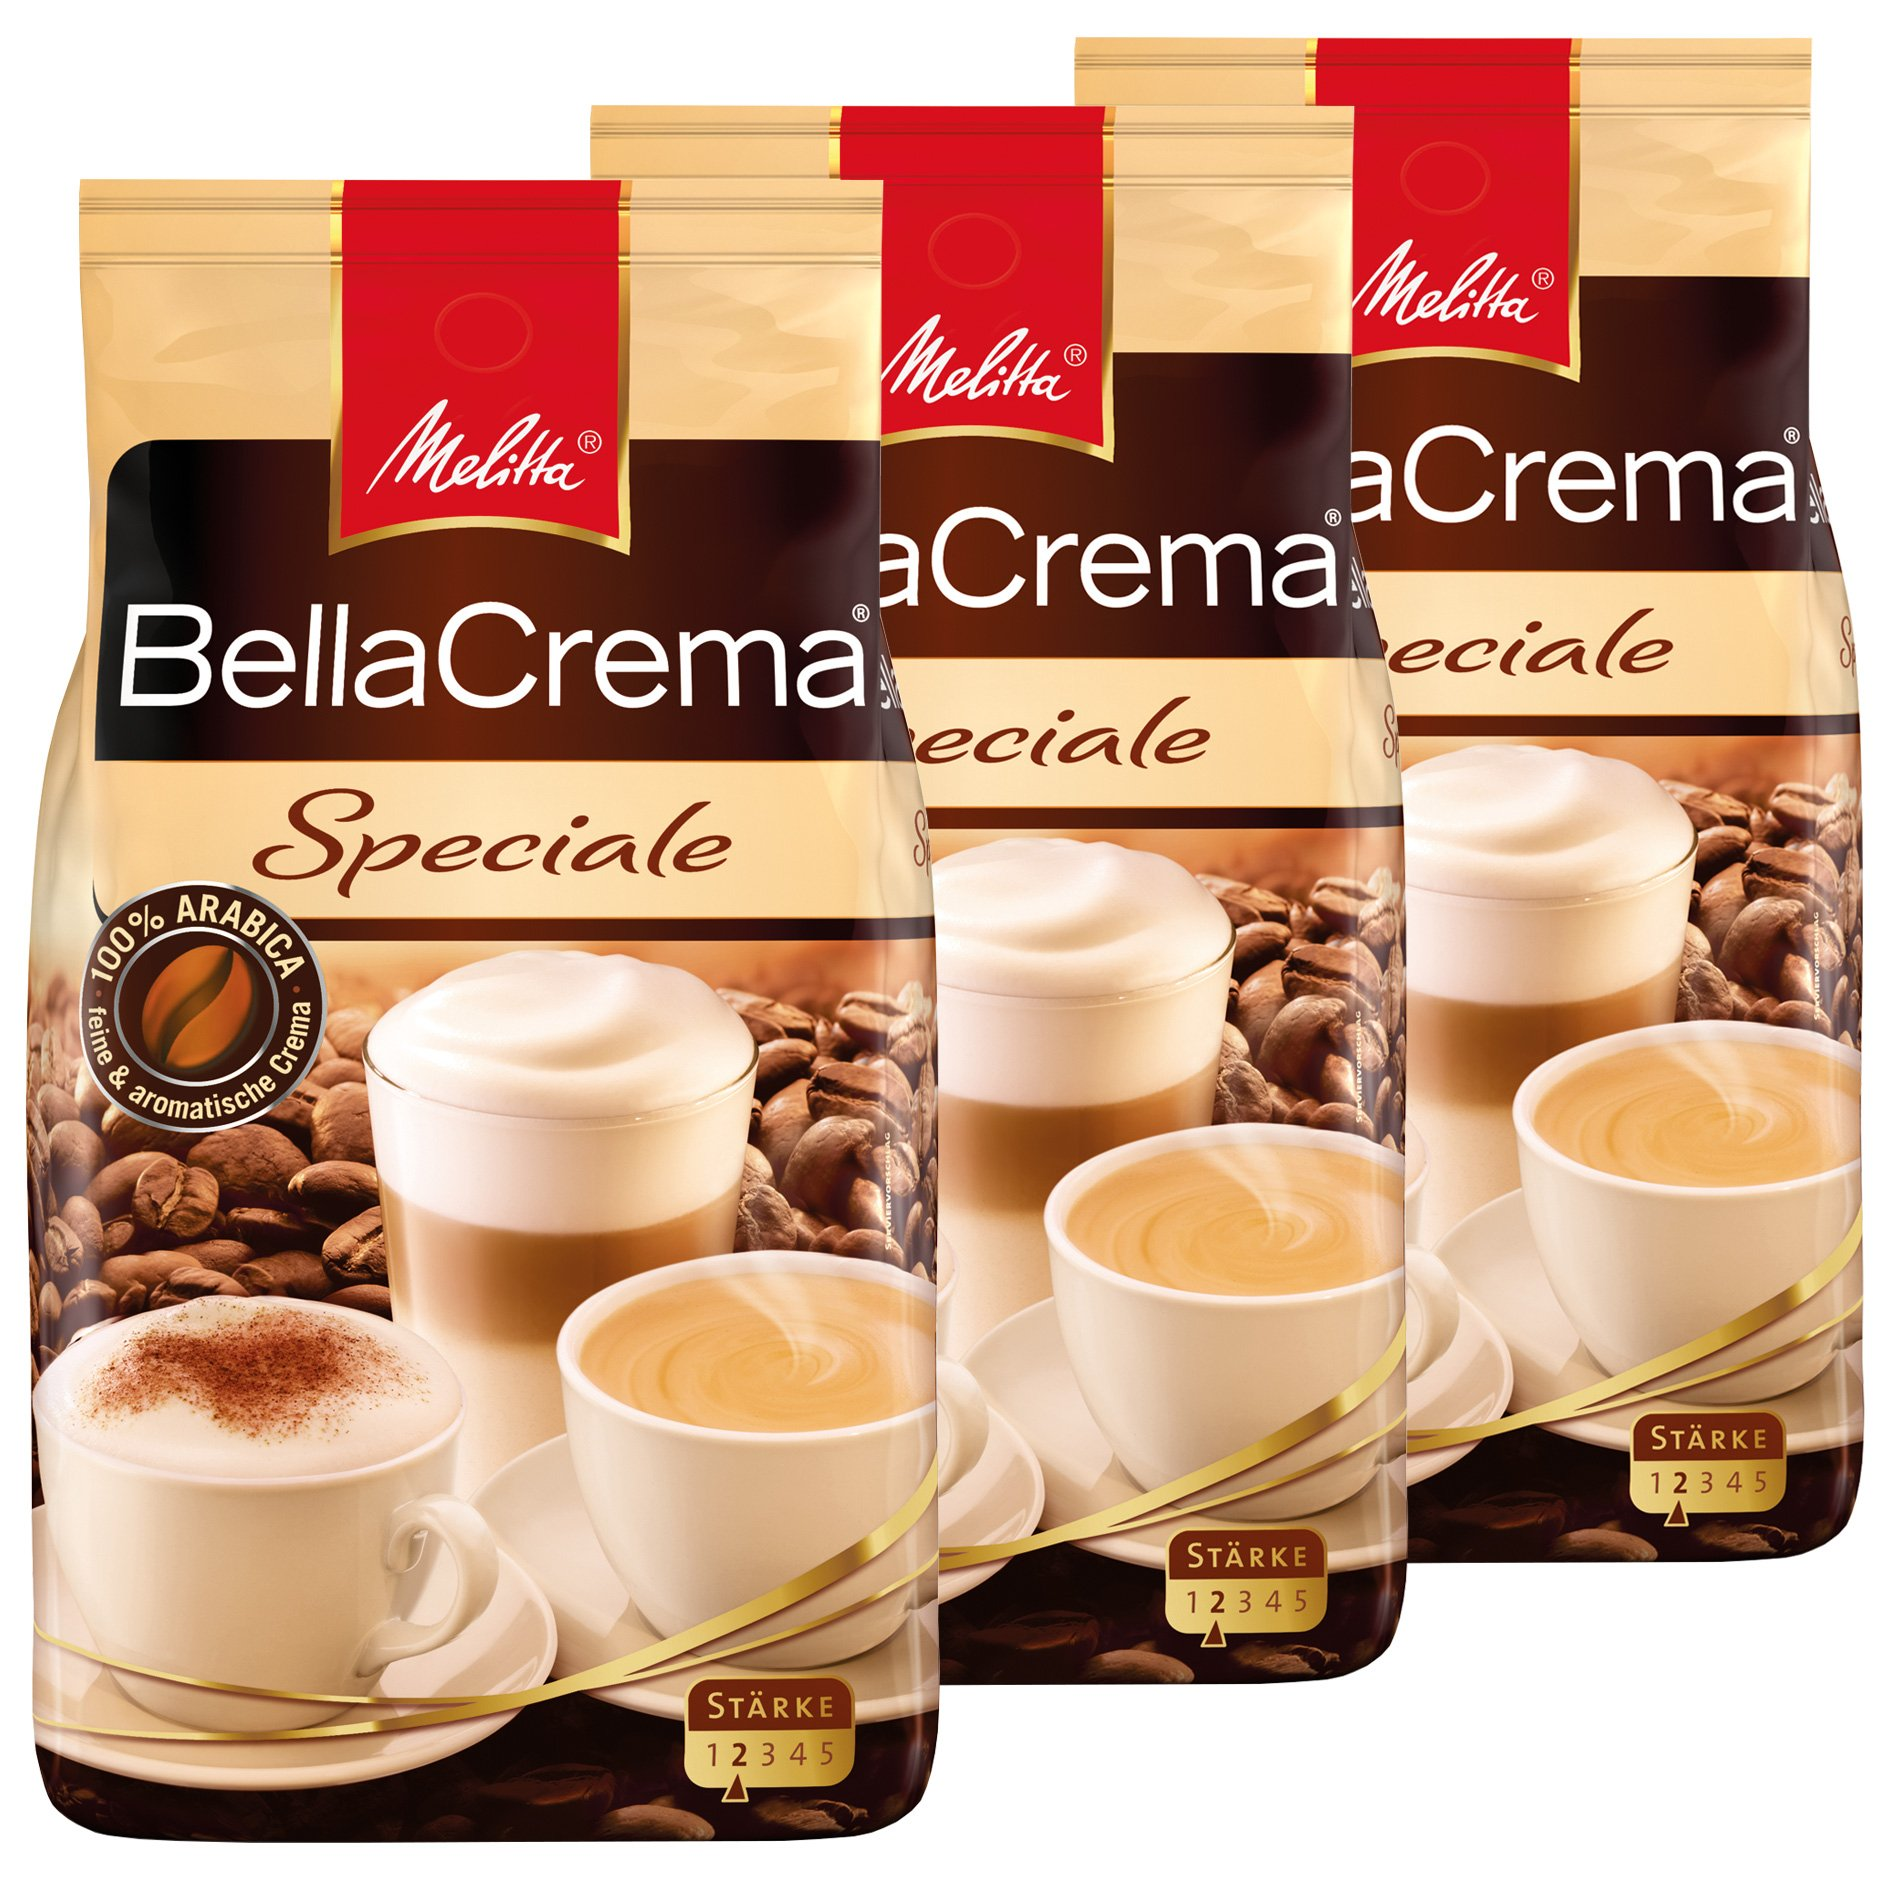 Melitta Coffee BellaCrema Speciale, Whole Beans, Pack of 3, 3 x 1000g